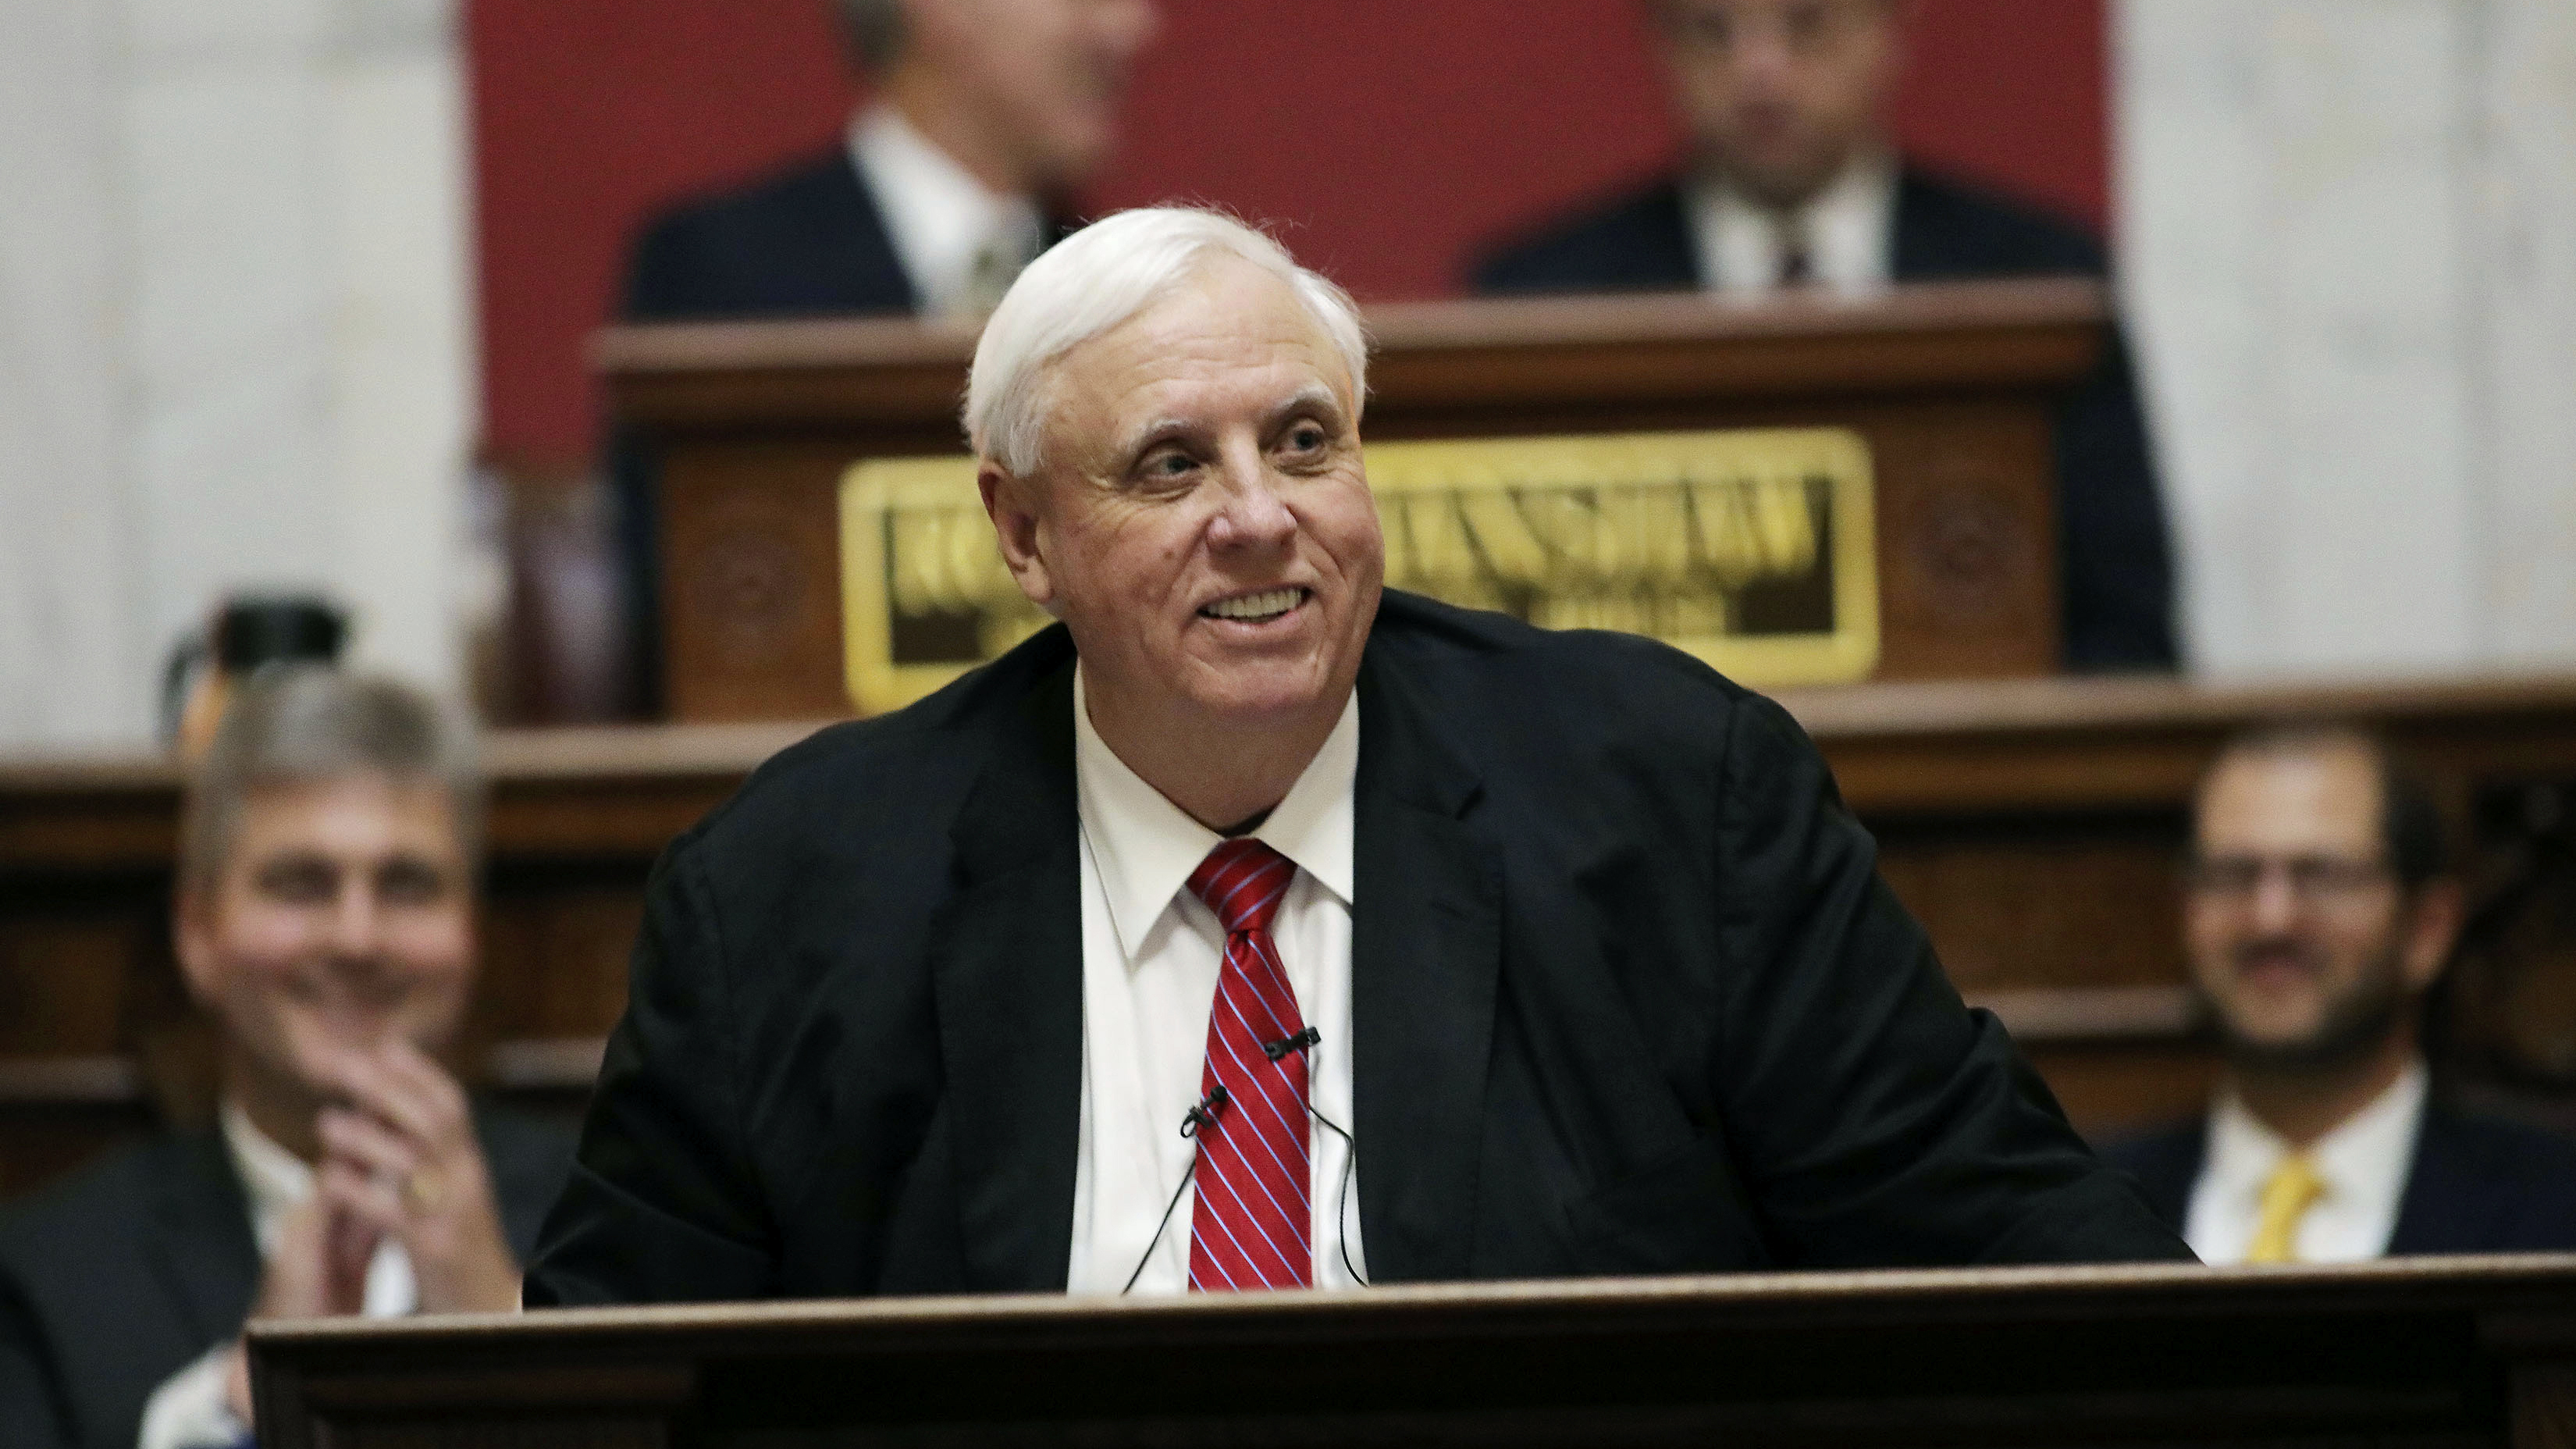 West Virginia Gov. Jim Justice announced in late December that residents older than 80 would be able to receive doses of the vaccine from their county health departments.